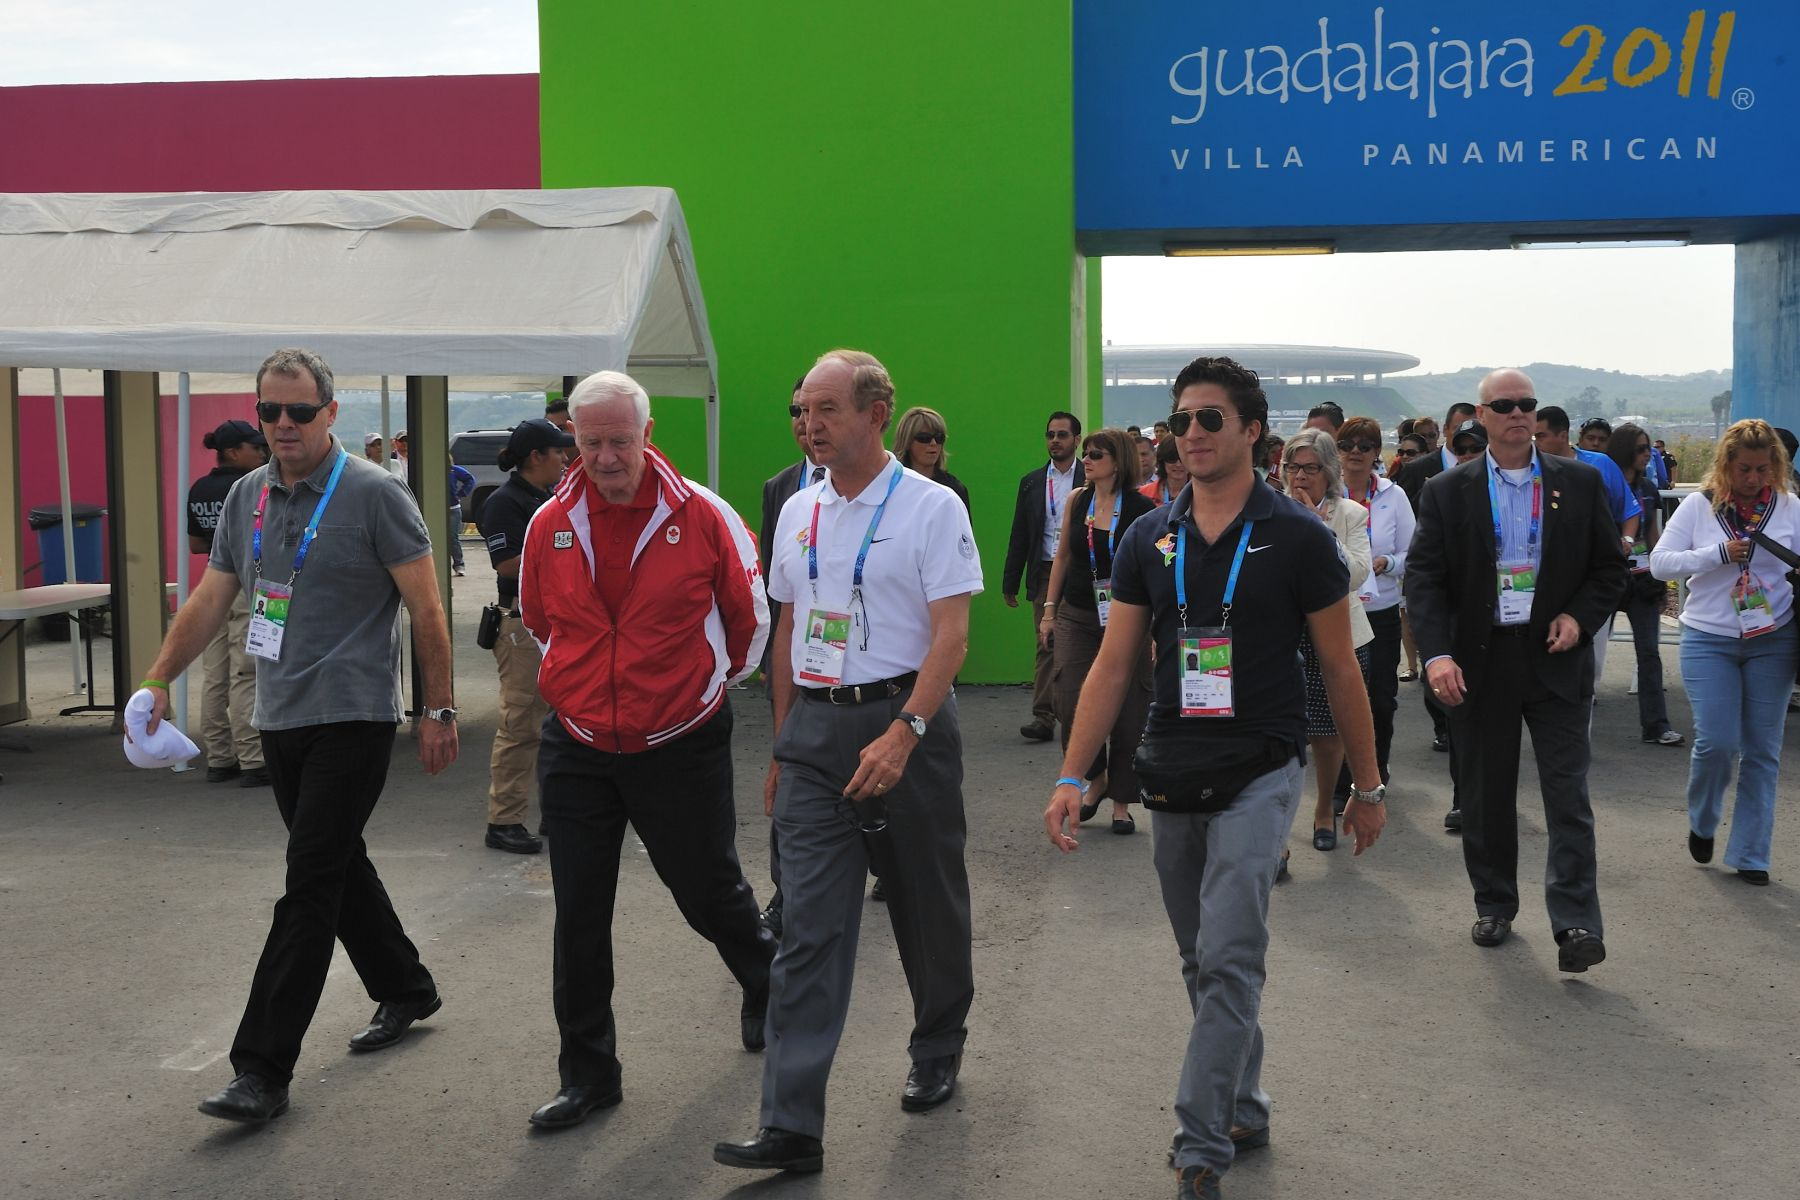 On his final day in Guadalajara, Mexico, His Excellency the Right Honourable David Johnston, Governor General of Canada, visited the Athletes' Village. Upon his arrival, he was welcomed by Mr. Nick Van der Kaaij, Village Mayor.